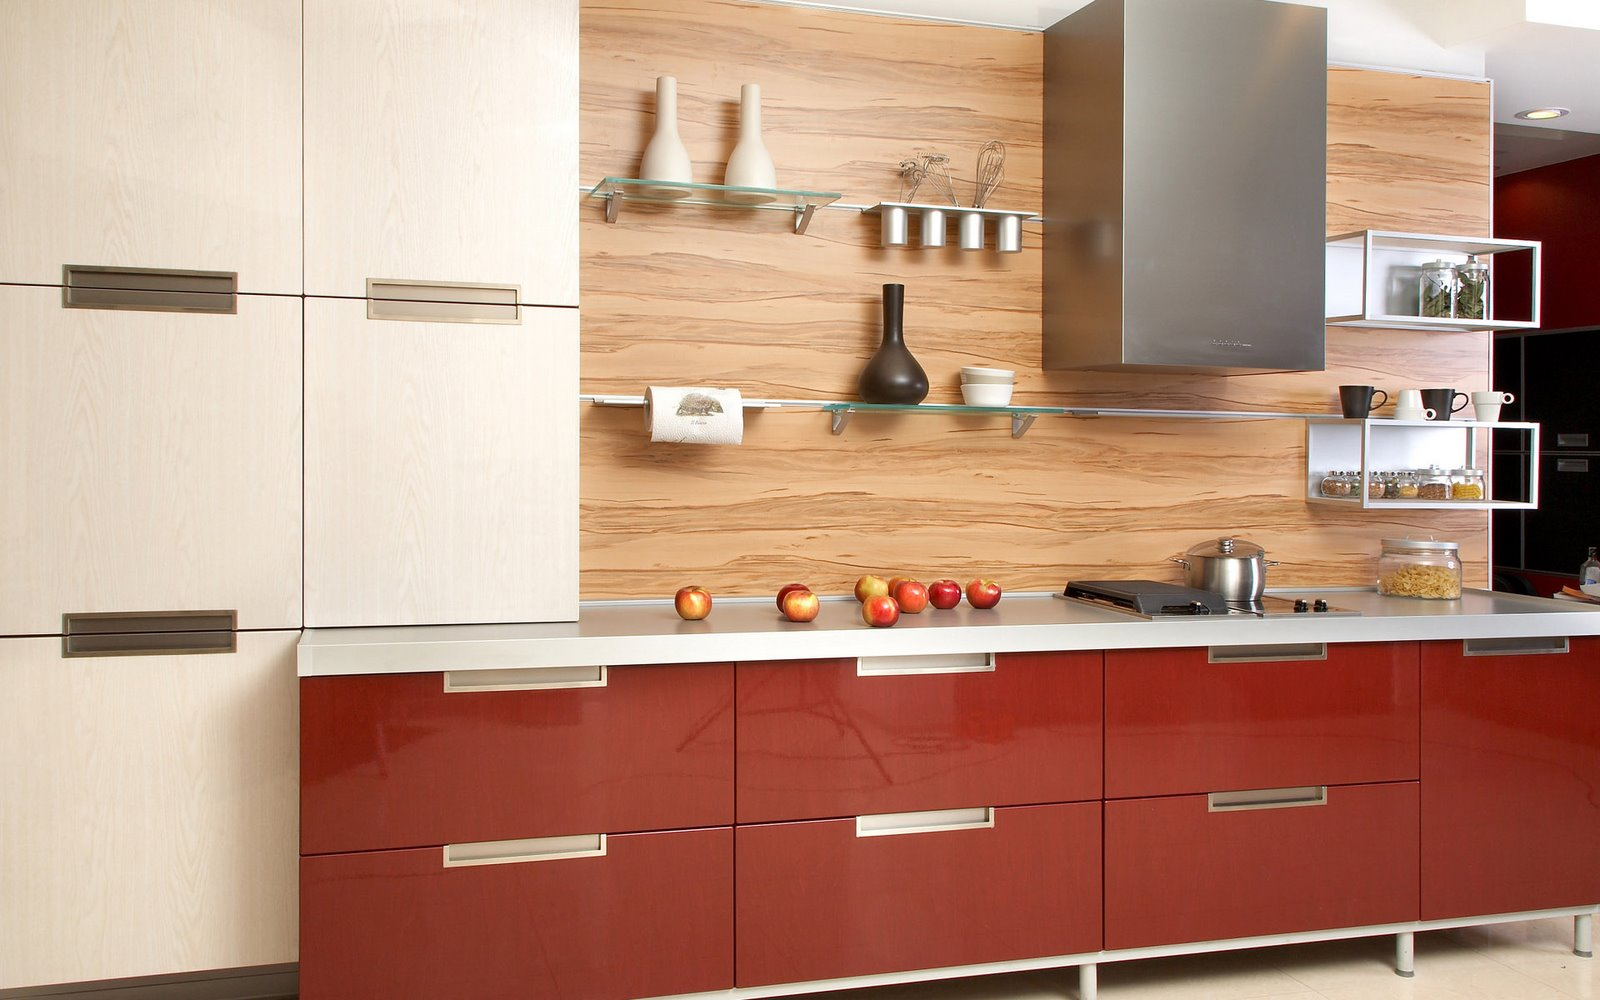 Brilliant Modern Kitchen CabiDesign 1600 x 1000 · 189 kB · jpeg